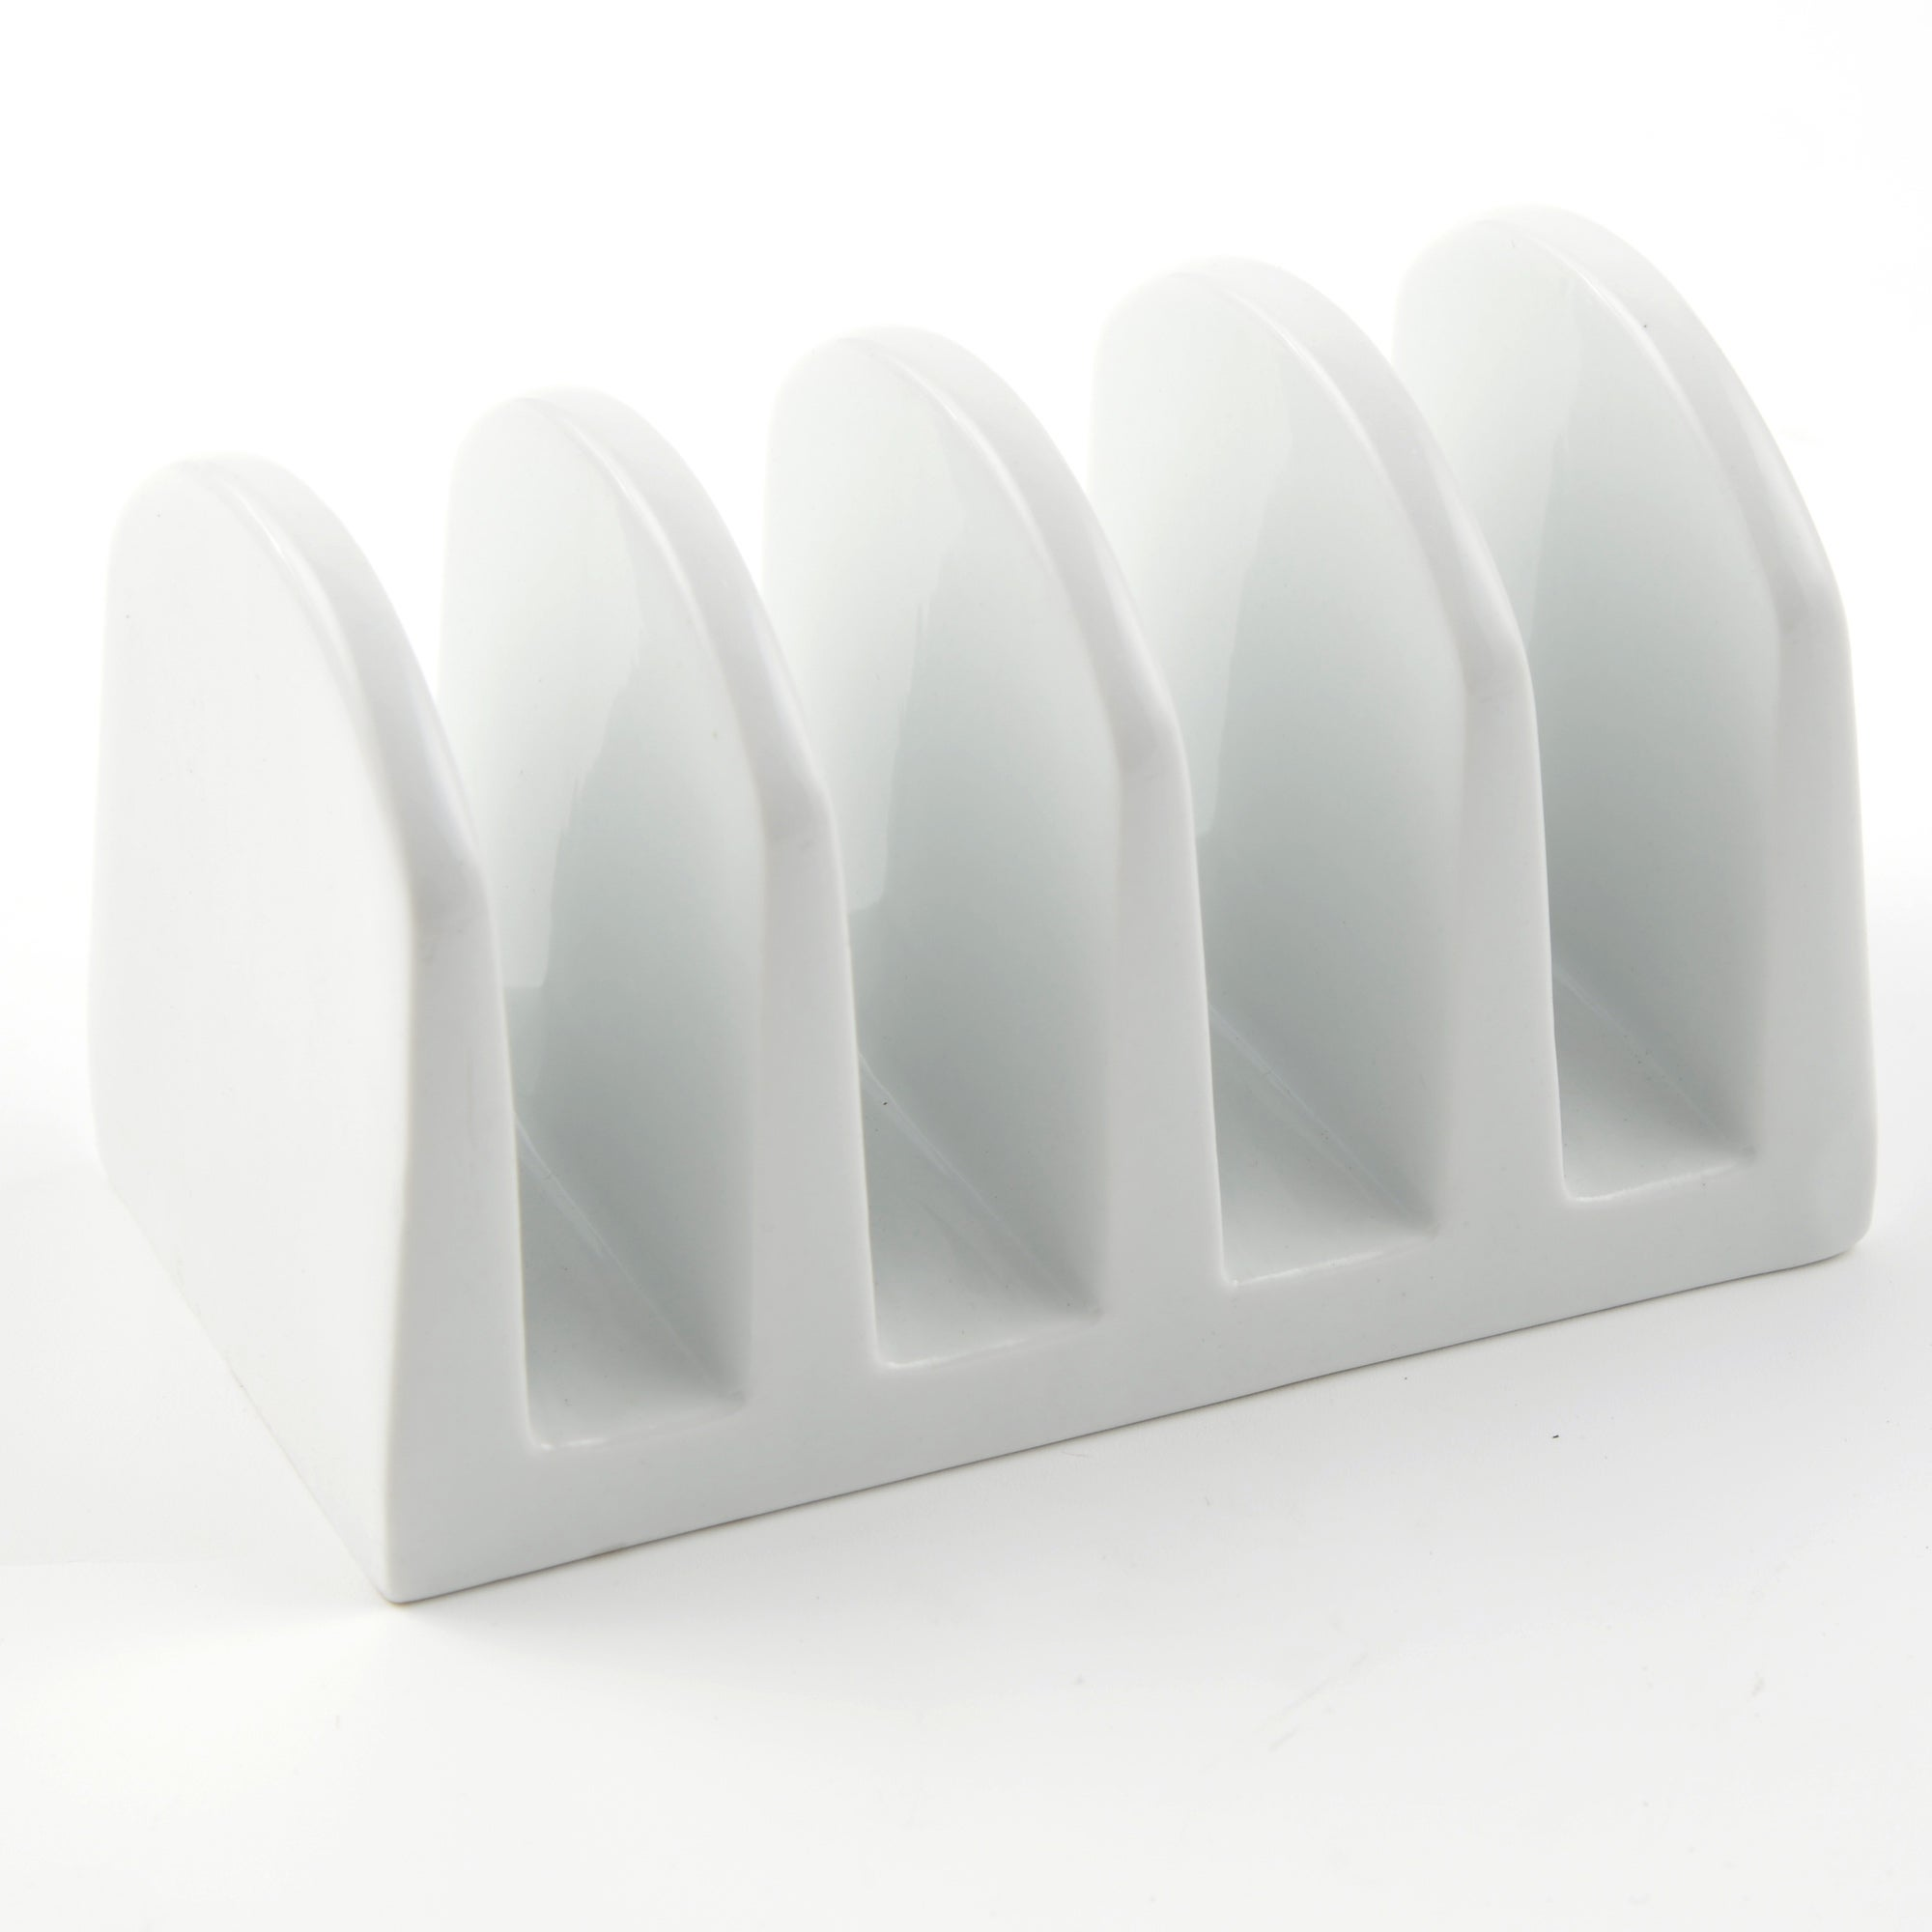 Purity Collection Toast Rack